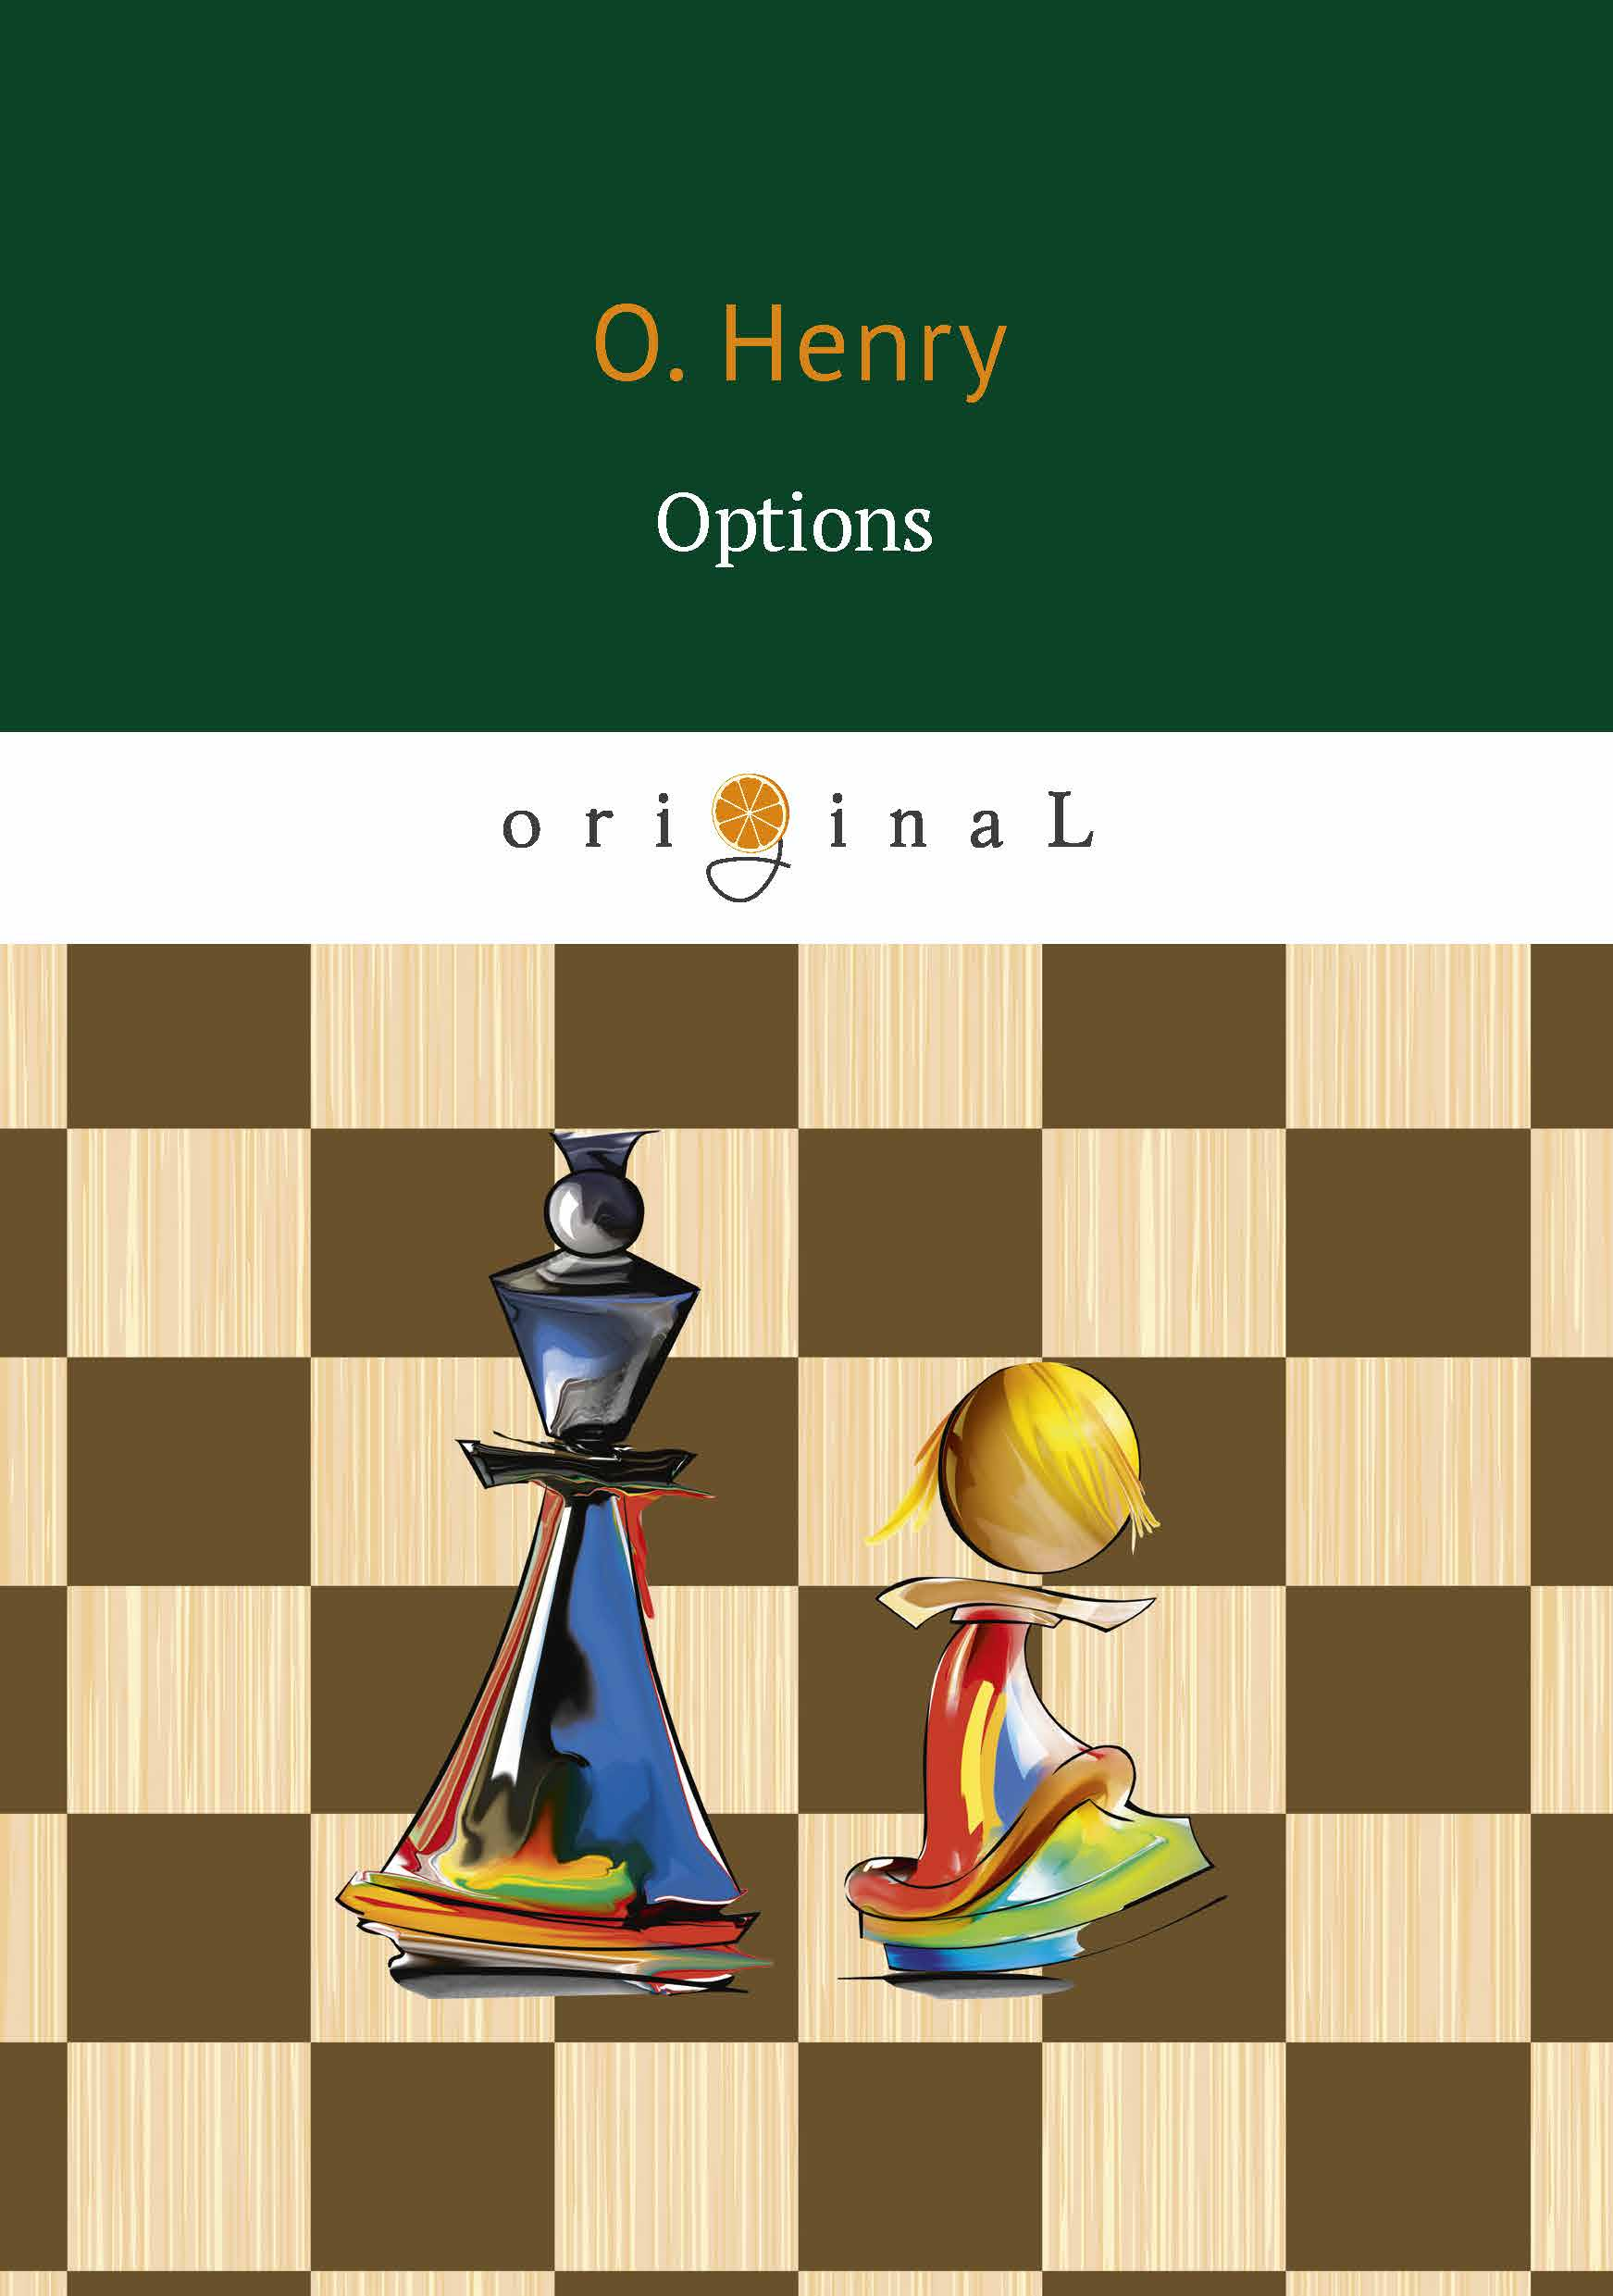 O. Henry Options o henry the o henry short story collection volume i